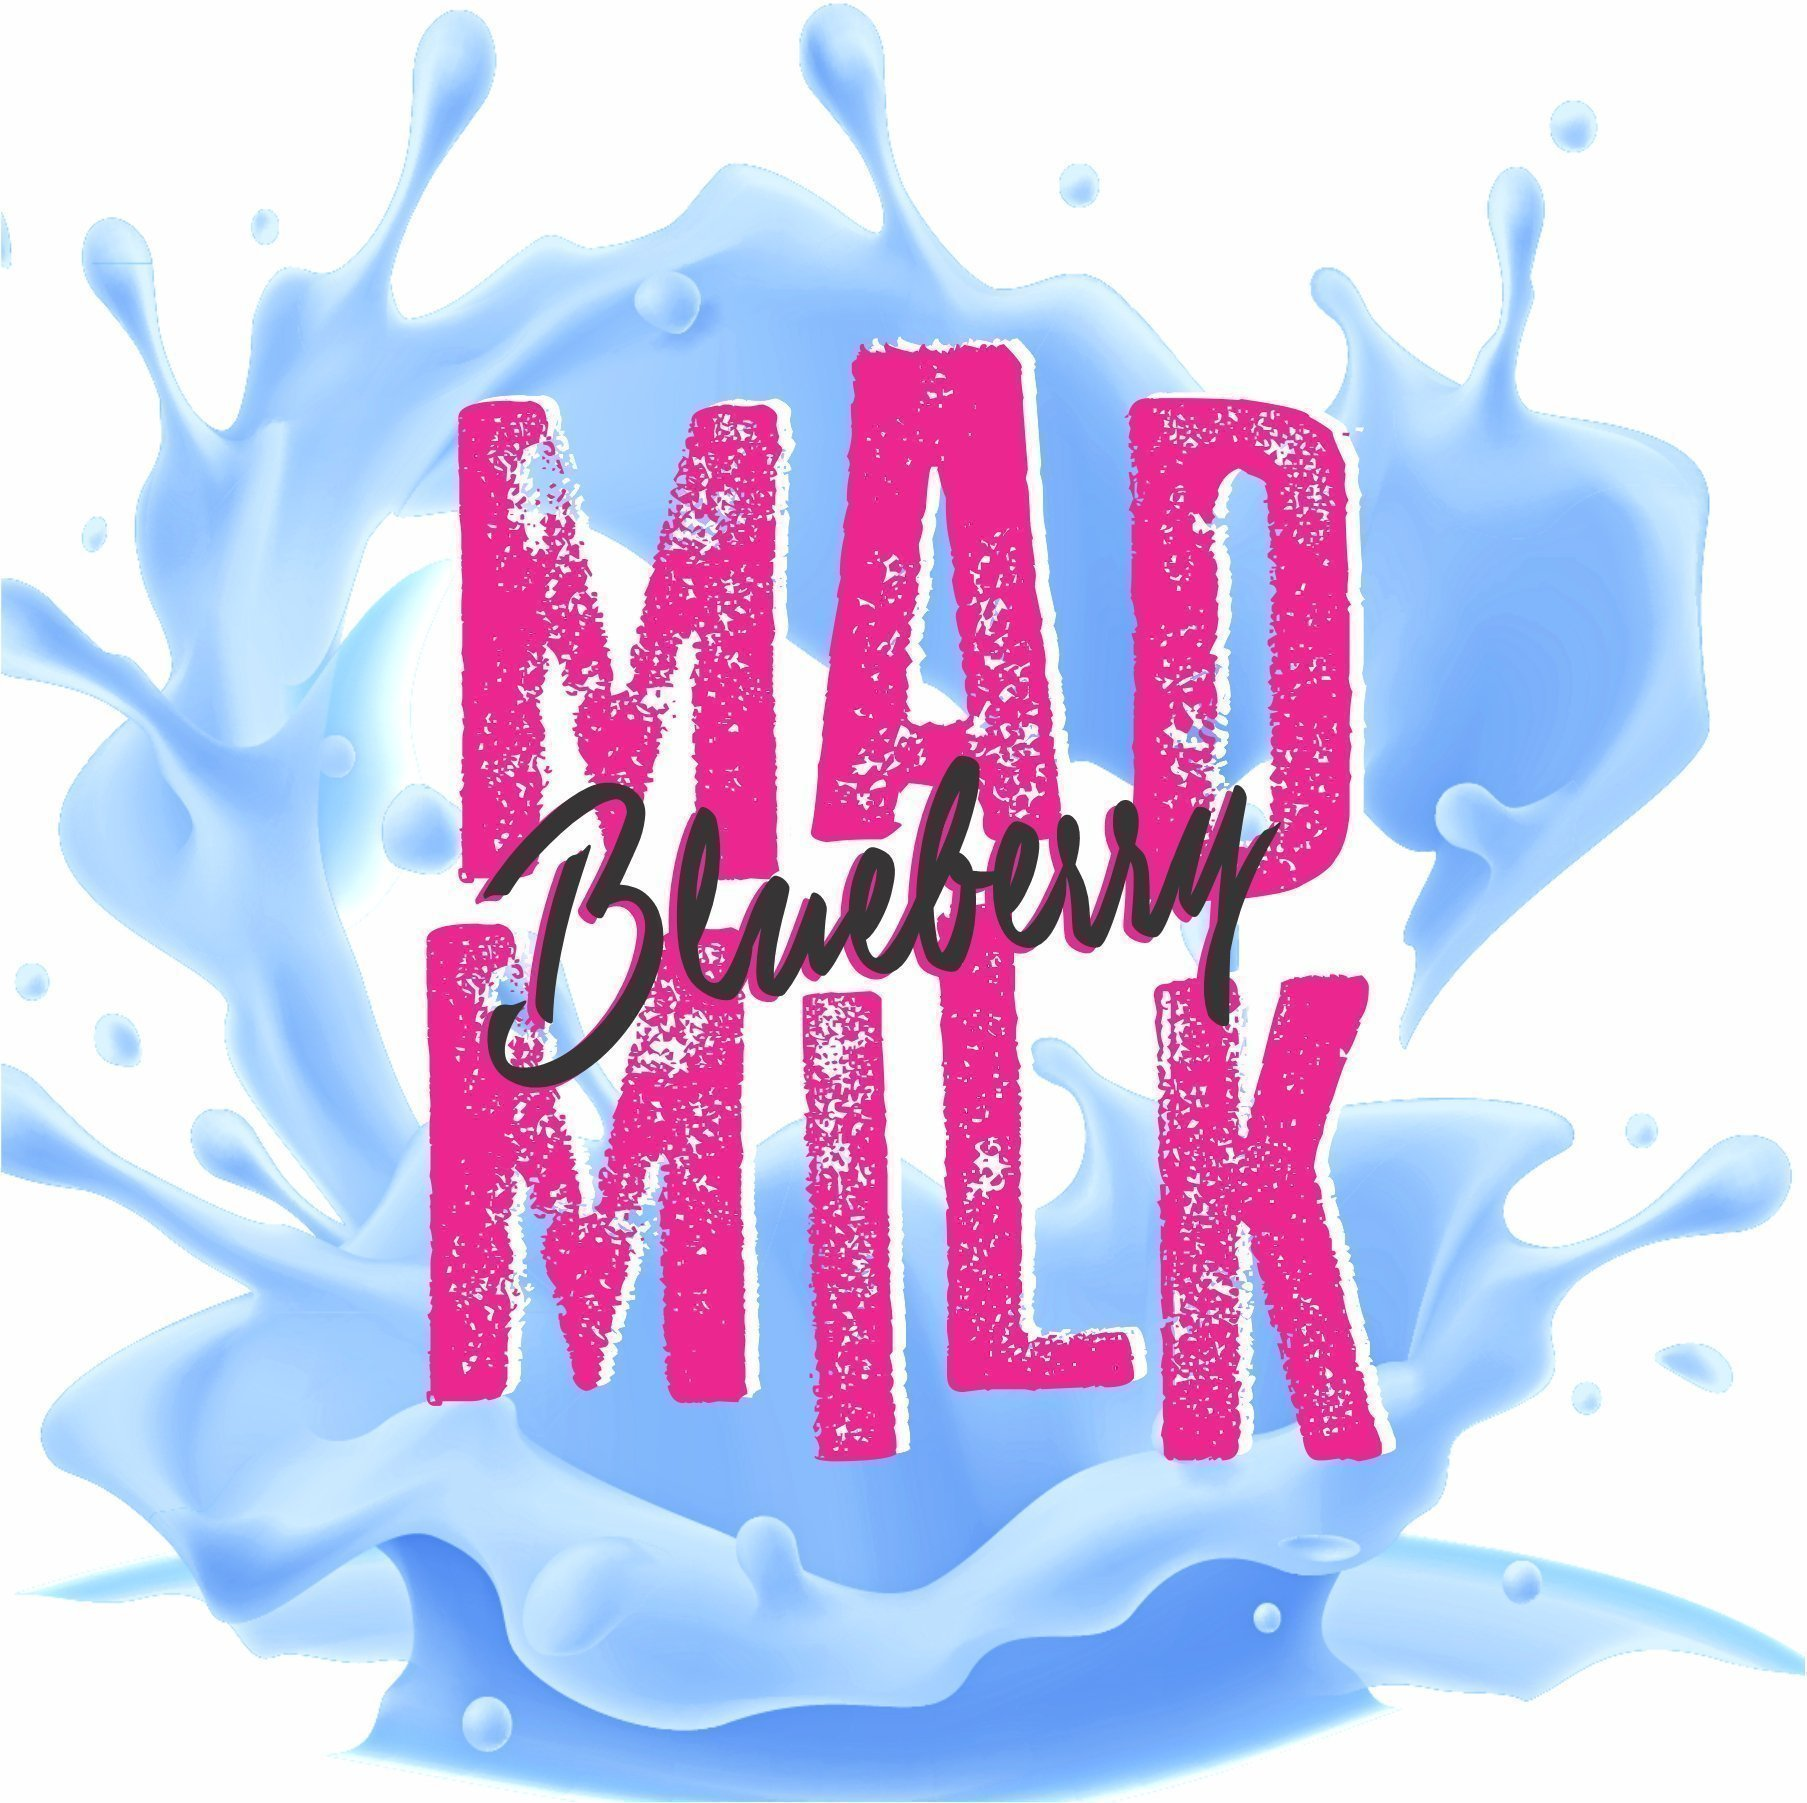 100ml-Mad-Milk-blueberry Blueberry Mad Milk E-liquid - 100ml